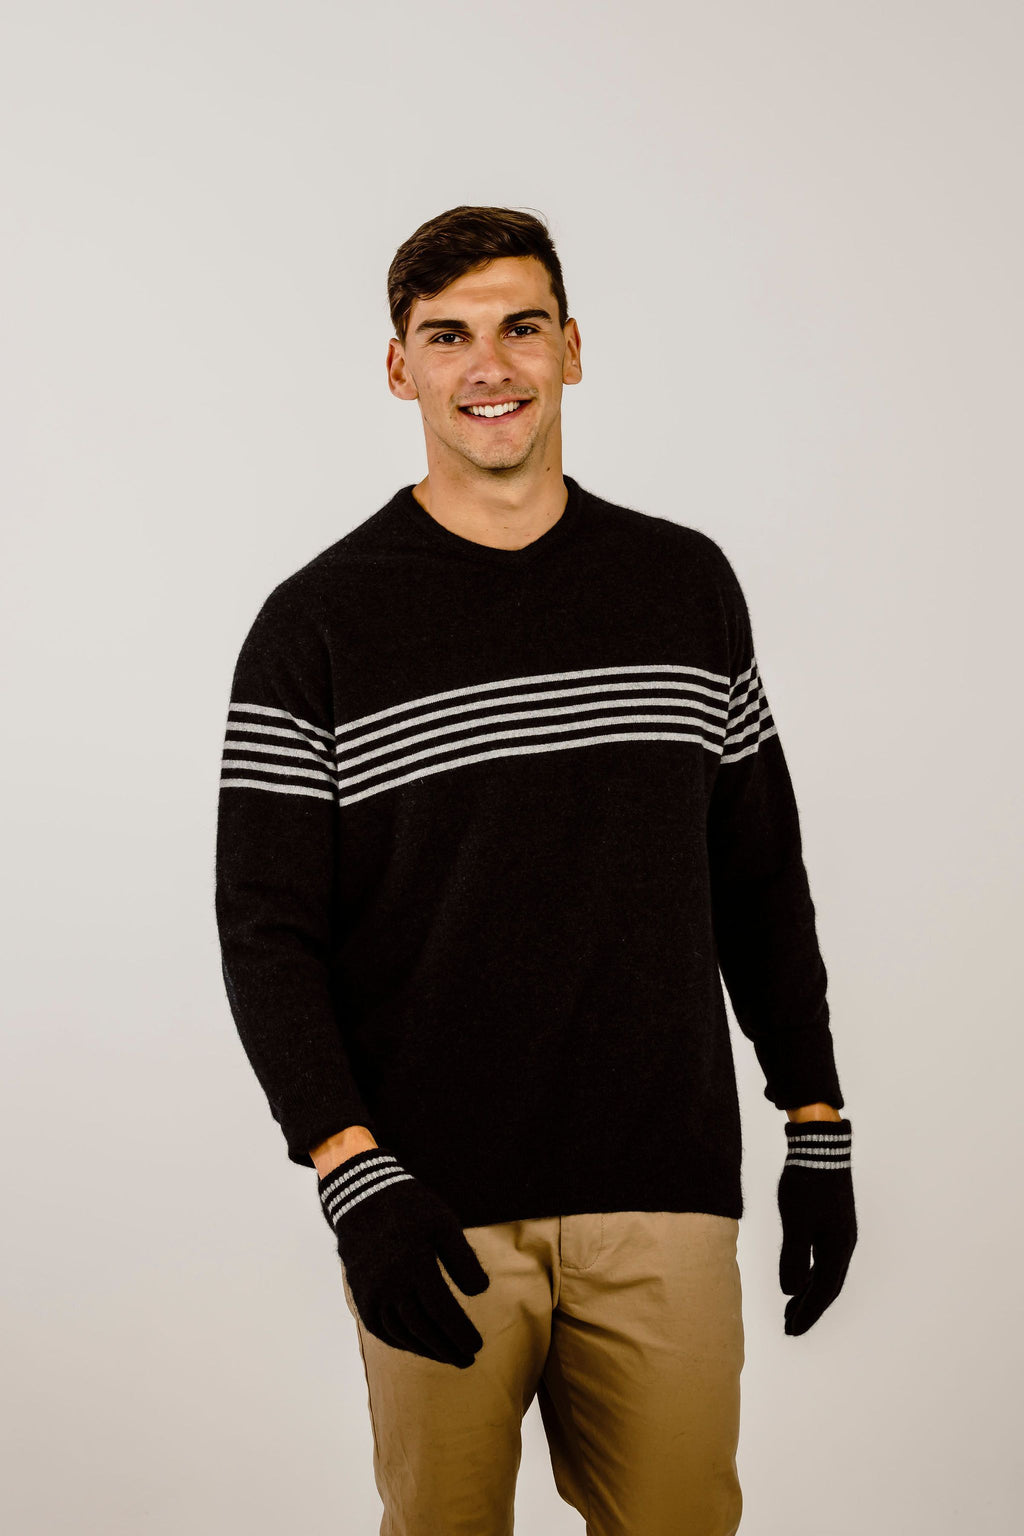 Merinosilk Everyday V Neck Sweater - Kapeka NZ